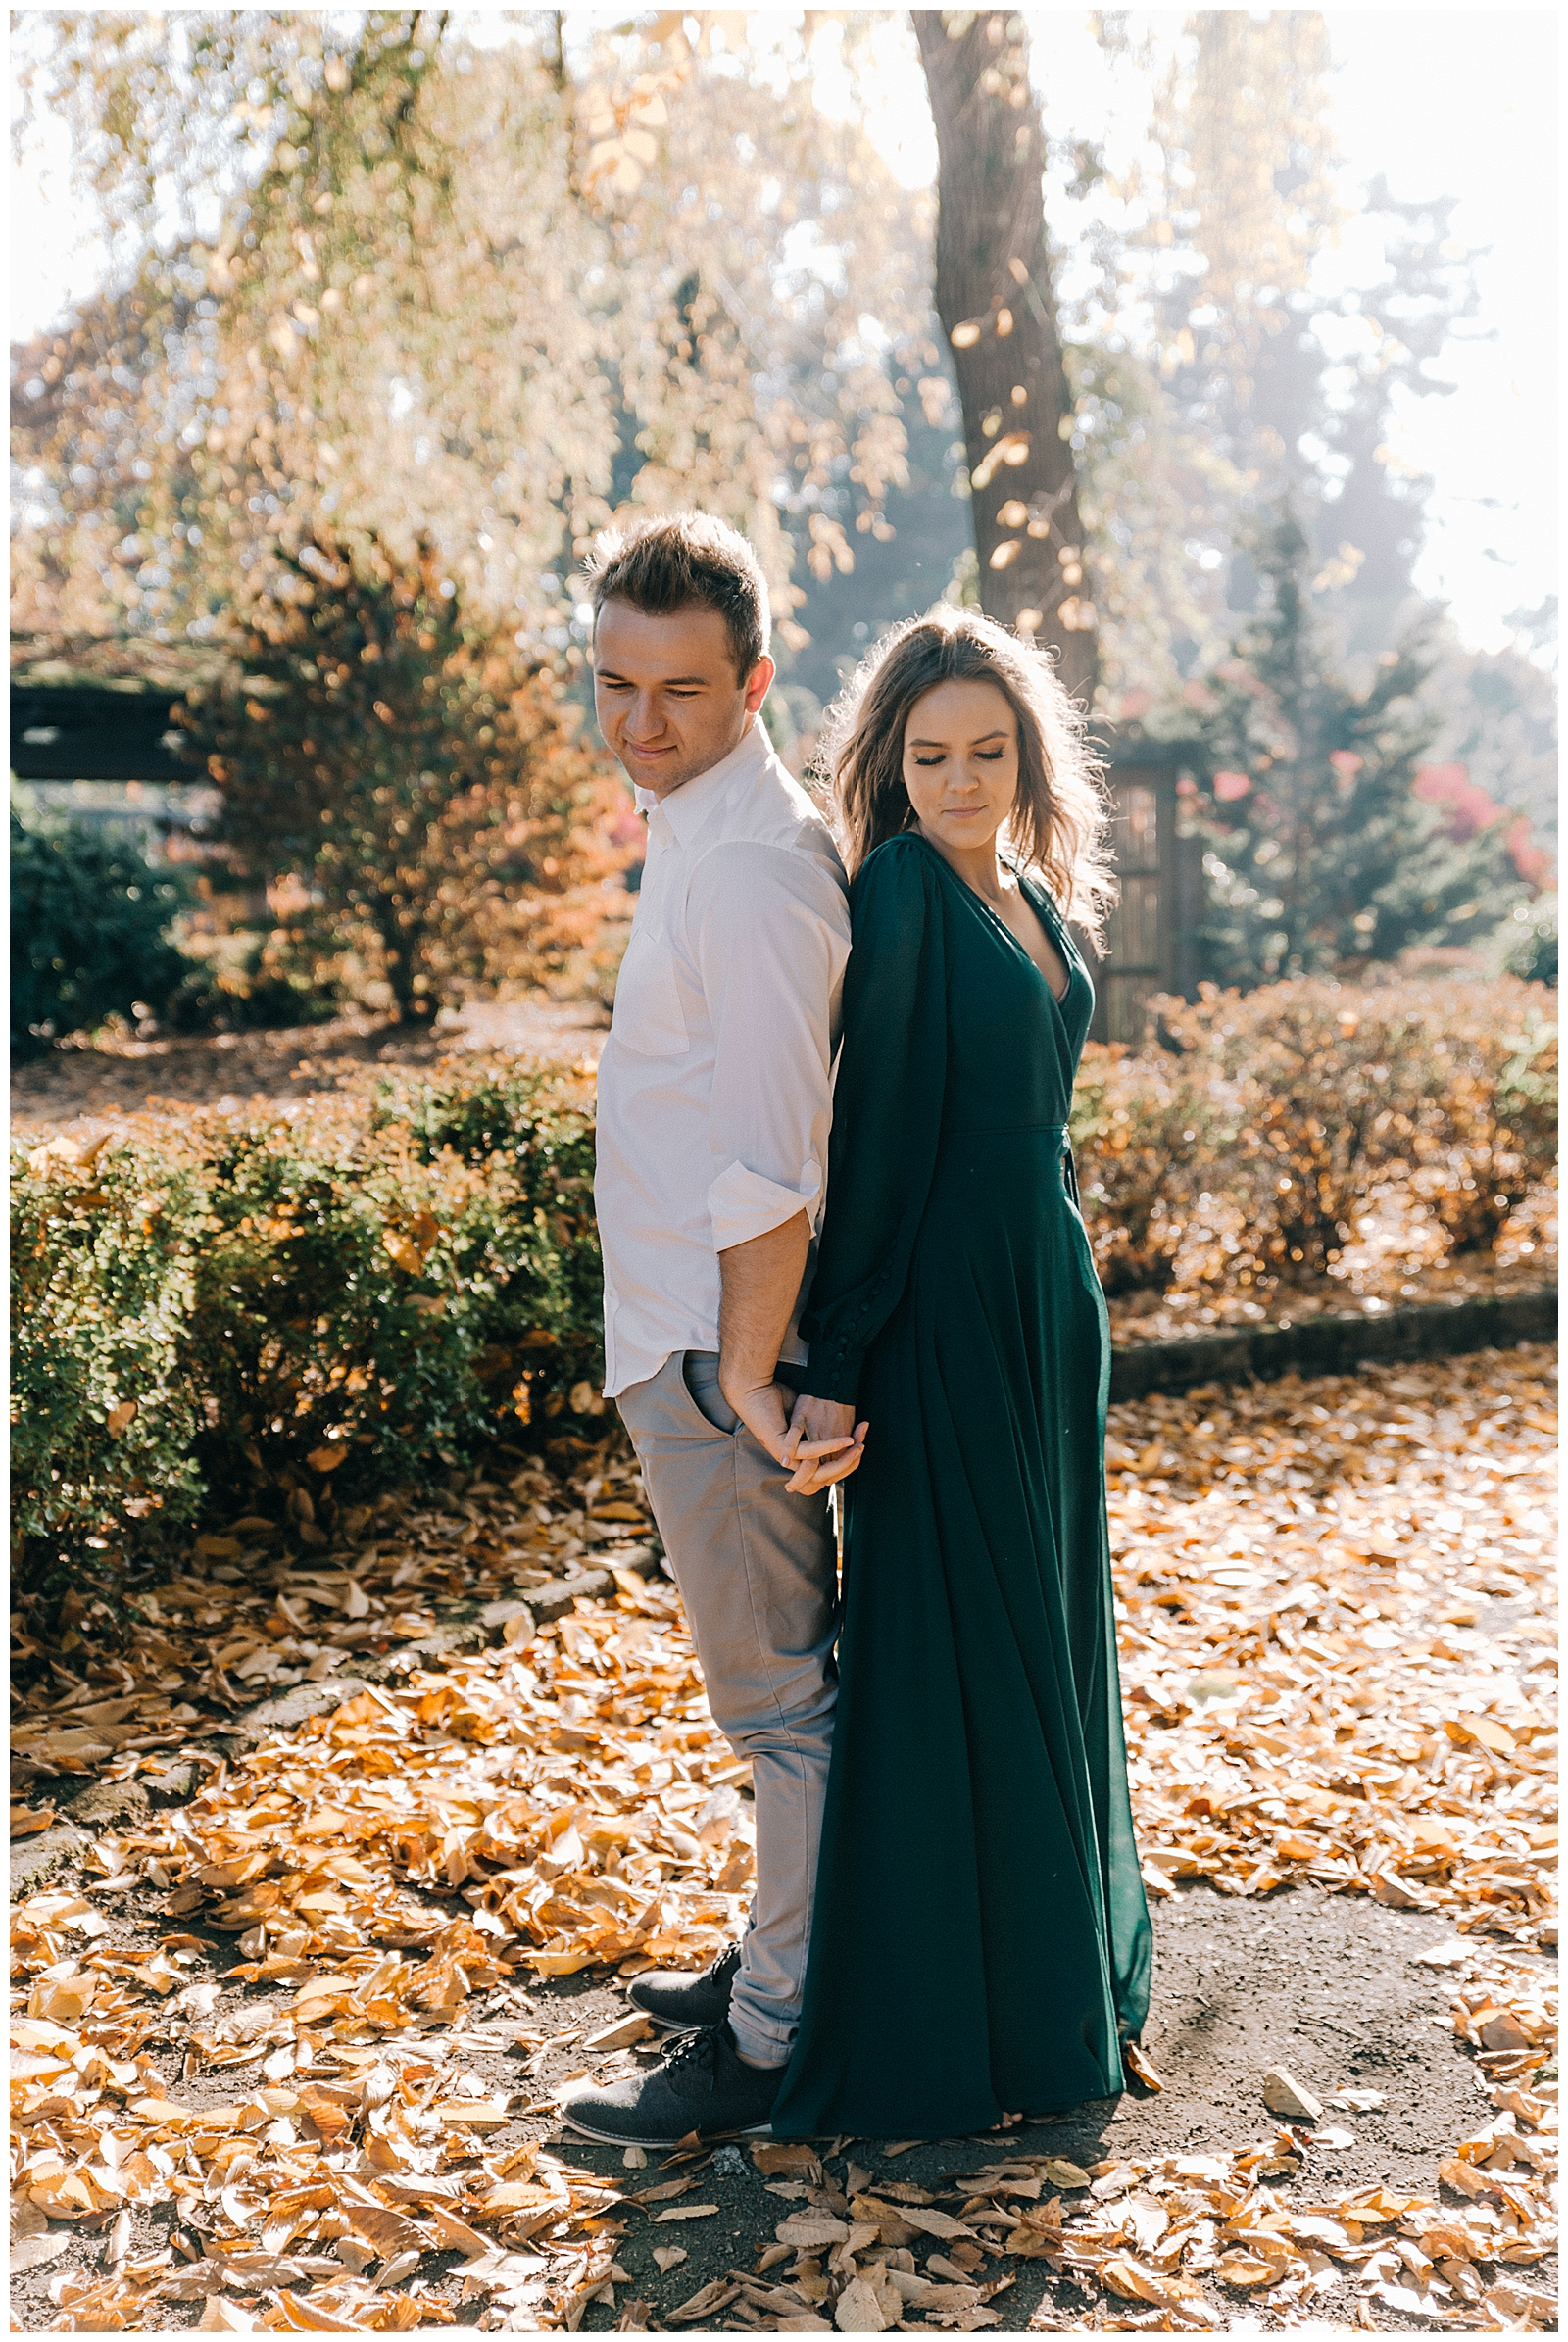 Vadim + Liana | Lake Sacajawea | Highlights | Annie Zav Photography | Anastasiya Zavrazhina | Highlights |18.JPG